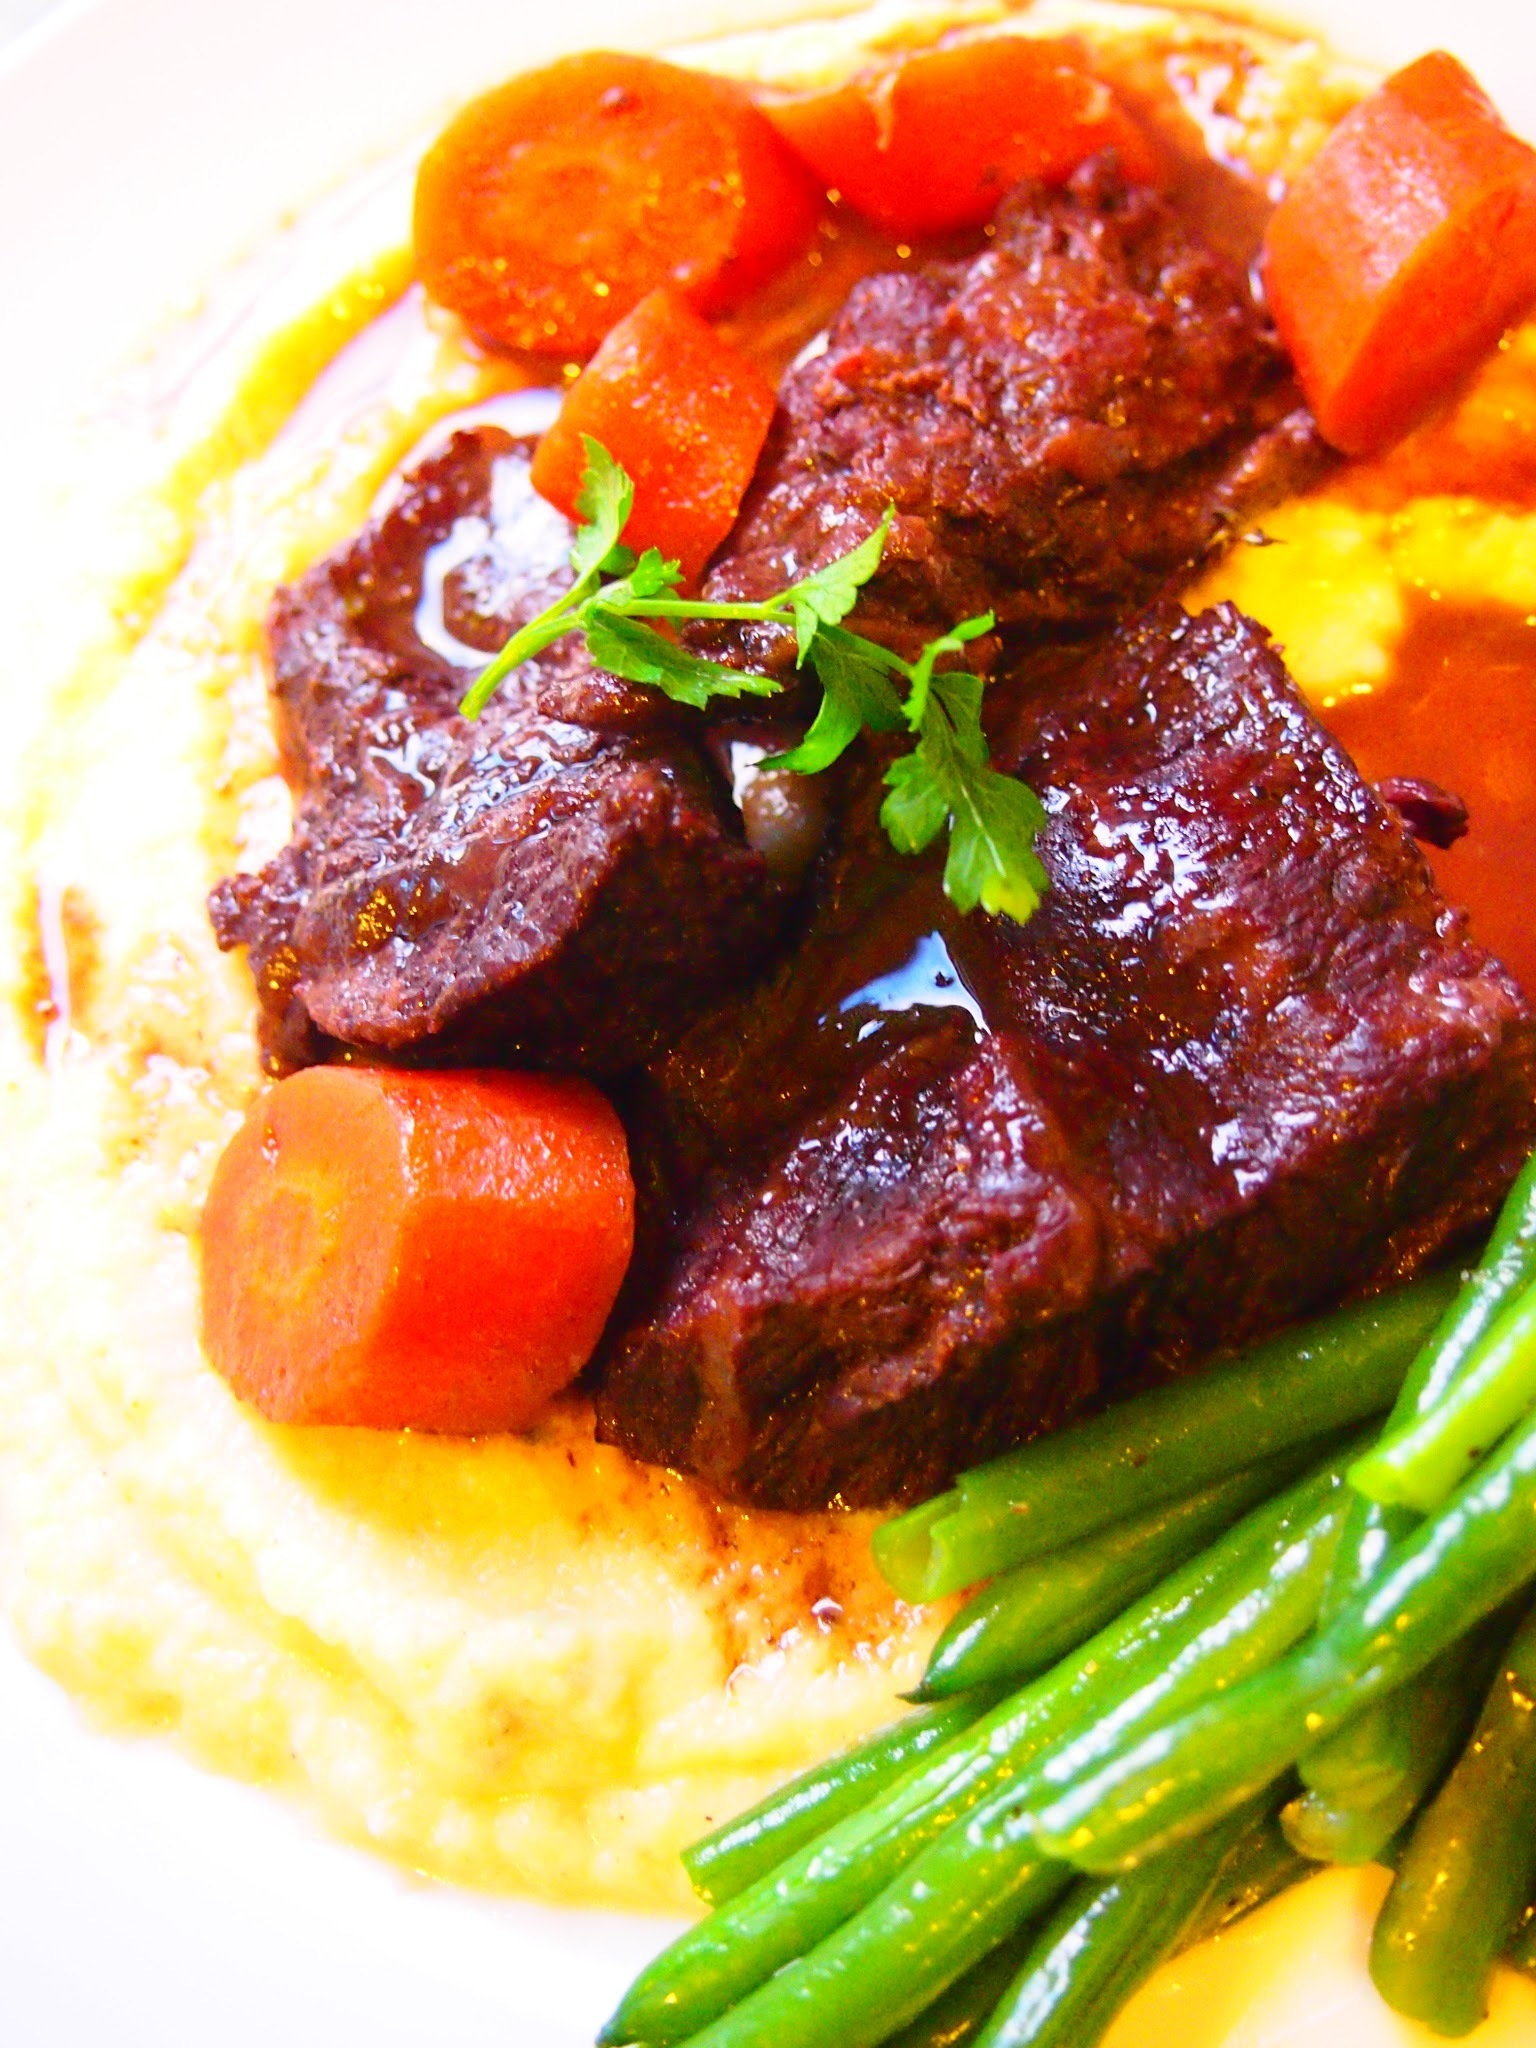 BEING CHEEKY AGAIN – Braised Beef Cheeks